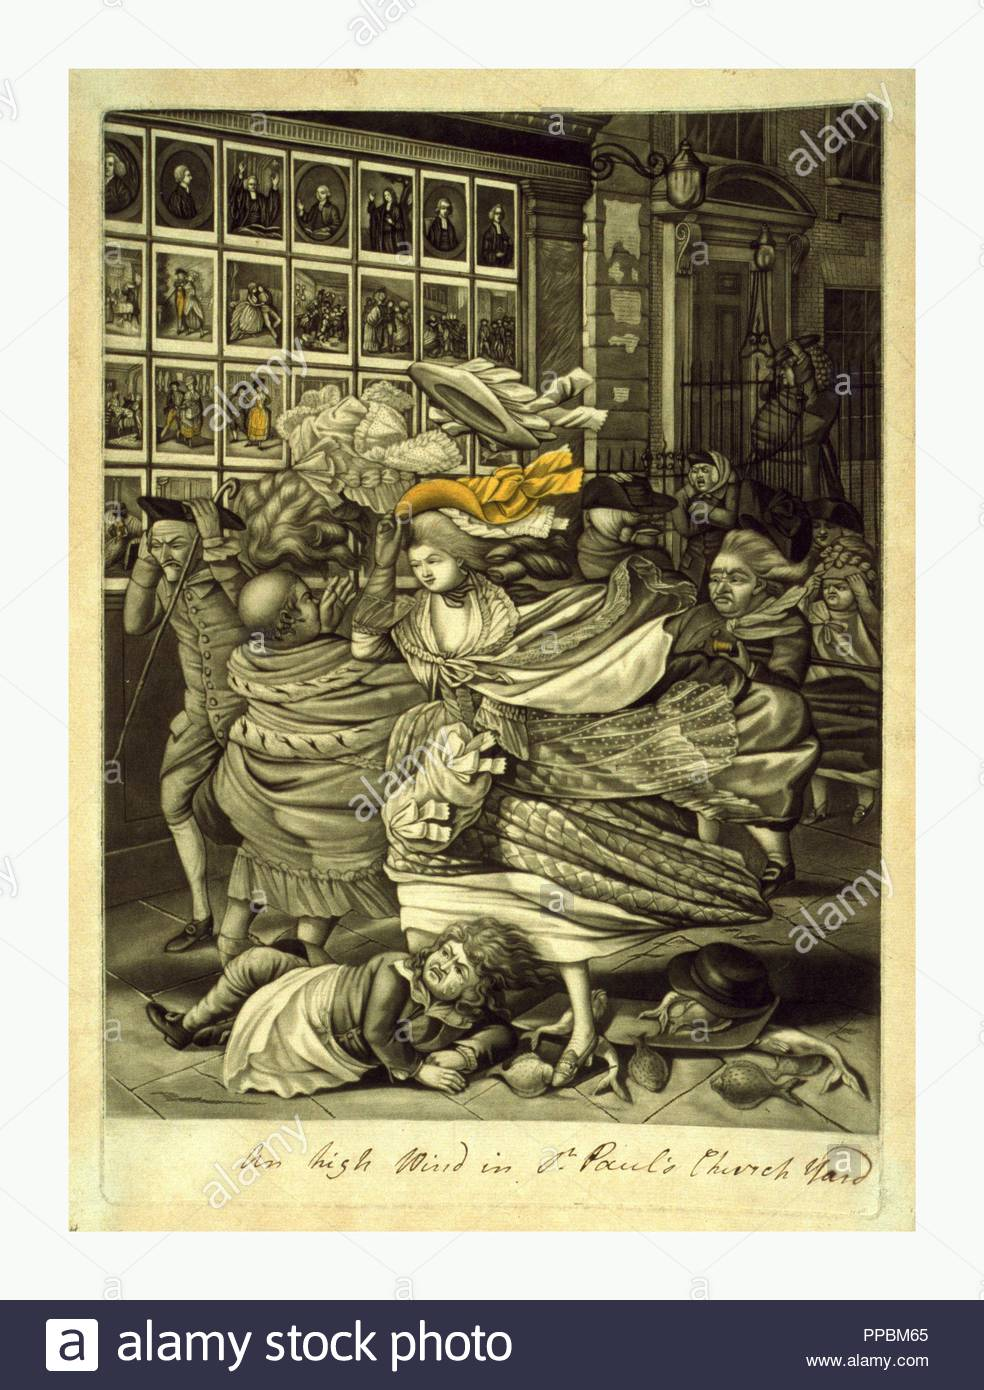 An high wind in St. Paul's Church yard, , artist, [1783], mezzotint, hand-colored, a street scene outside a print shop on a windy day as pedestrians struggle against the force of the wind. - Stock Image